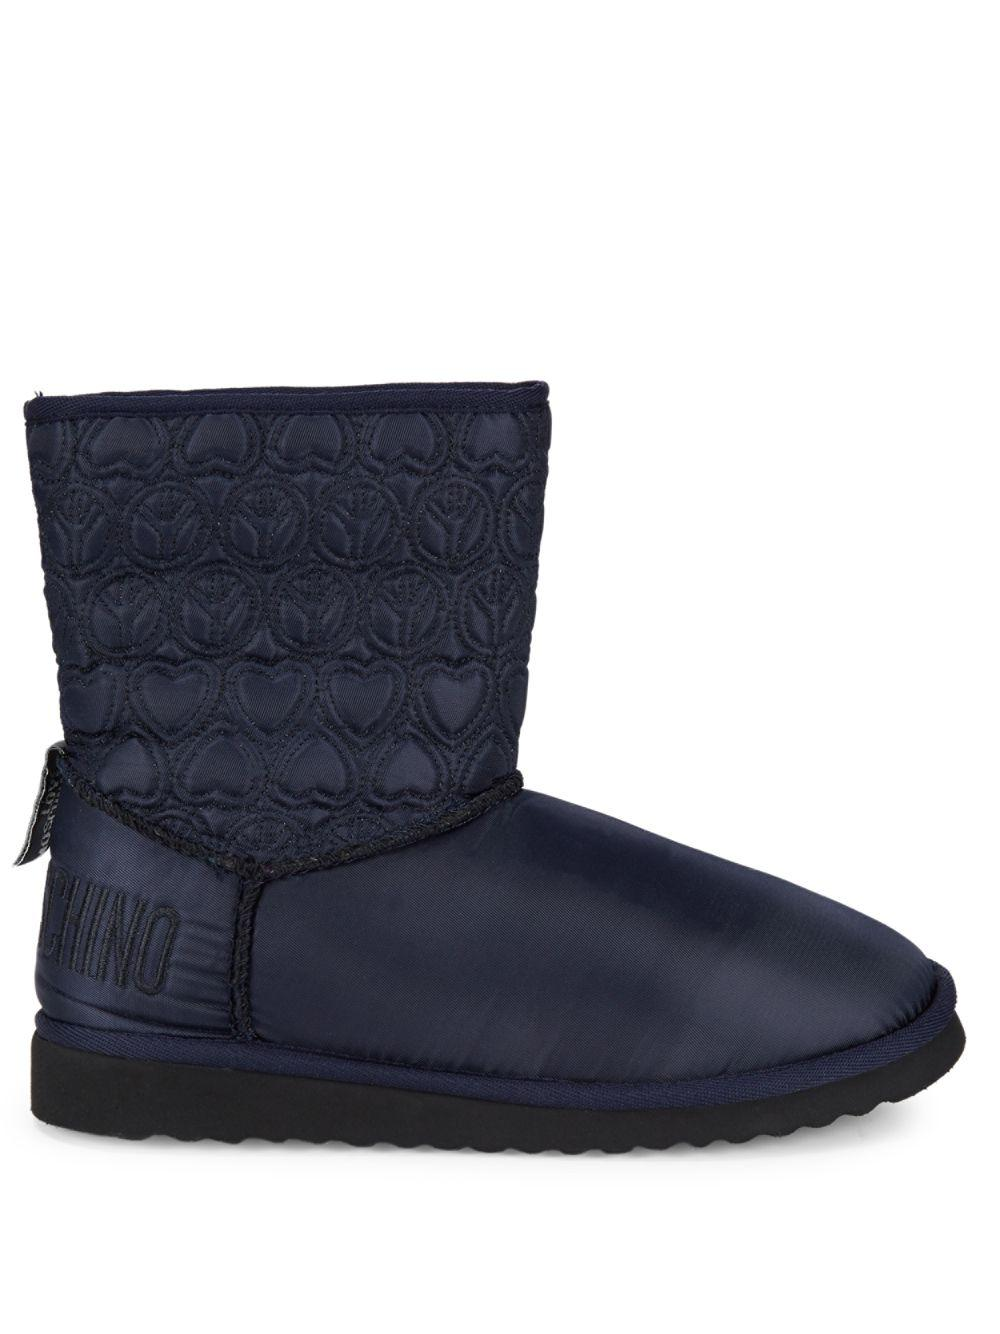 Love Moschino Faux Fur-lined Embroidered Booties in Blue